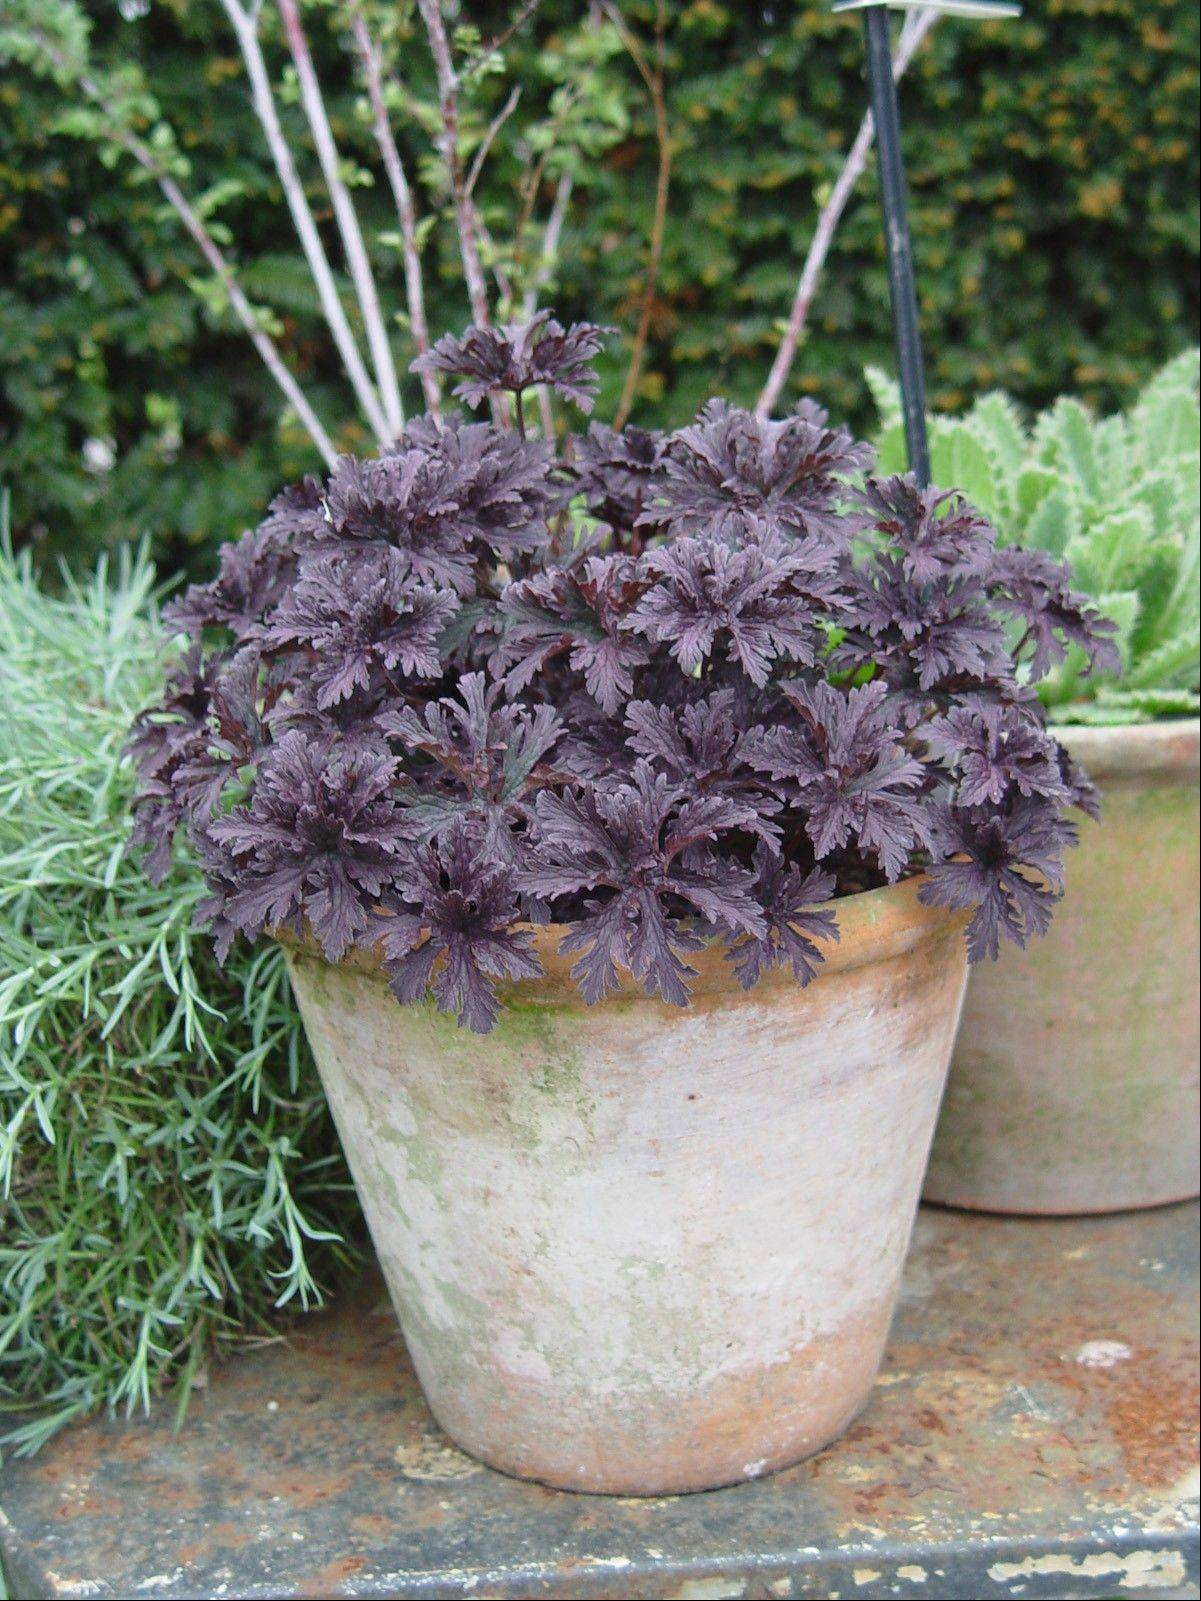 The plum-colored foliage of this heuchera demonstrates great color even when not in bloom.